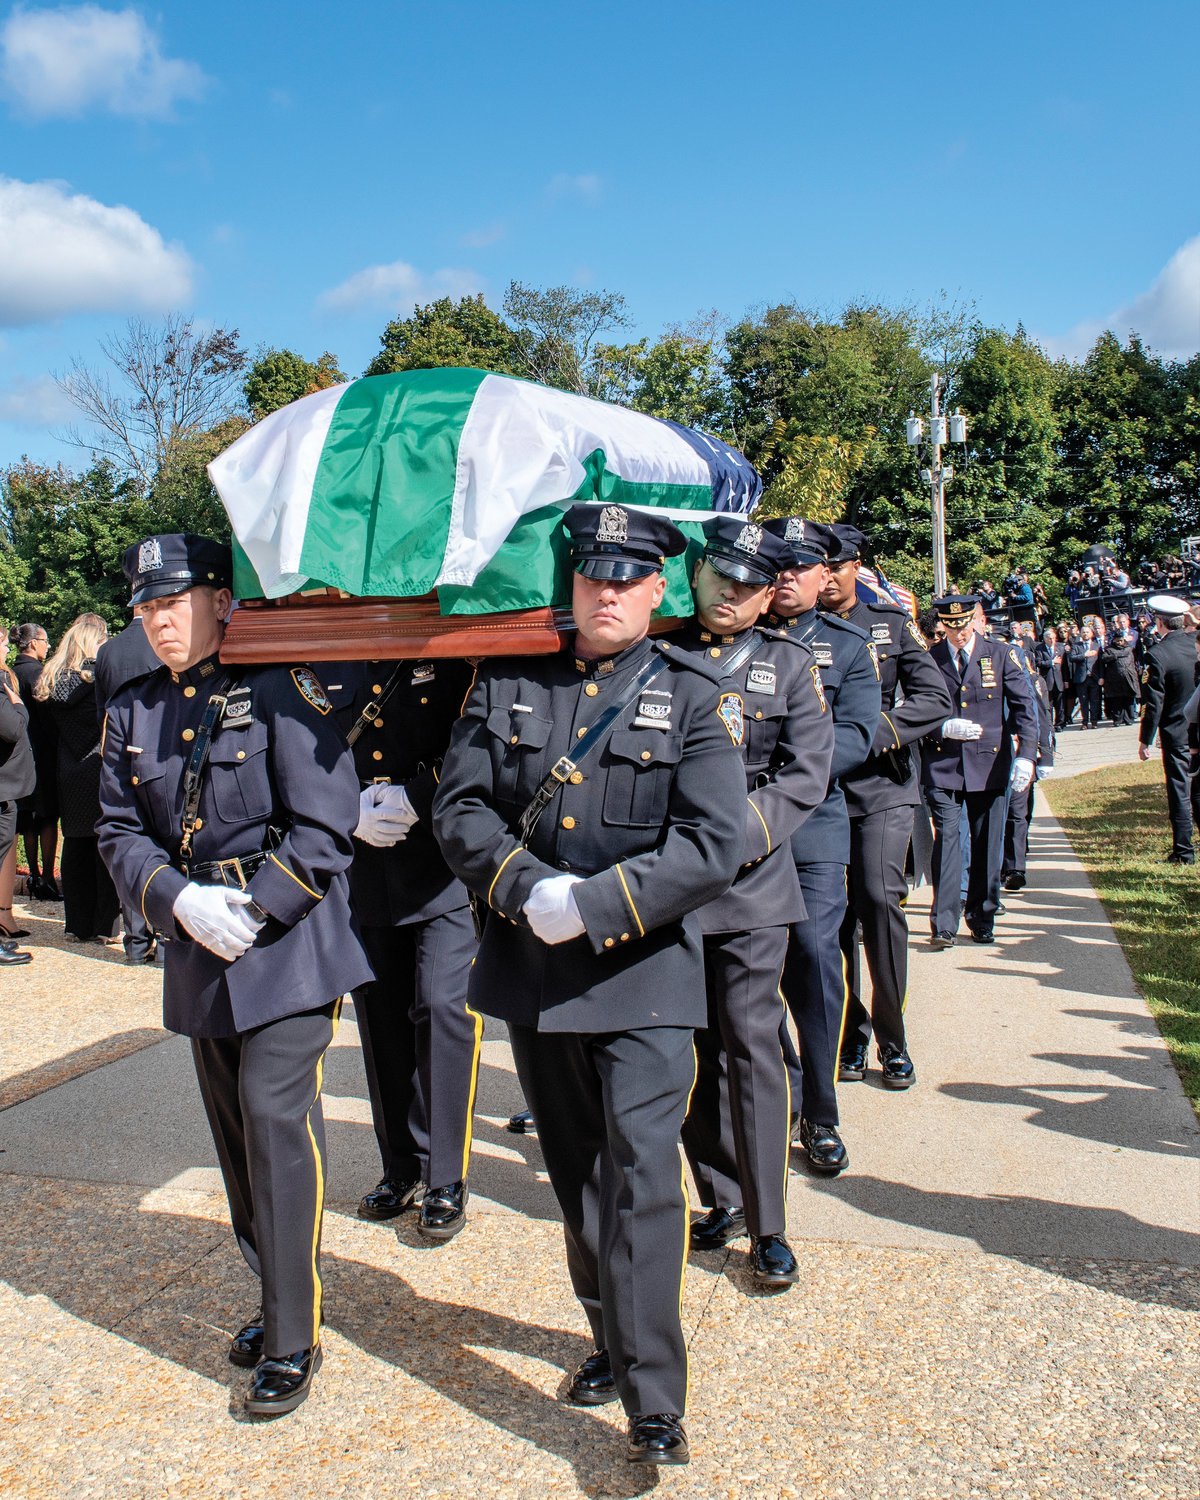 Cardinal Dolan celebrated the Funeral Mass of NYPD Officer Brian Mulkeen, who died from friendly fire in the line of duty in the Bronx.